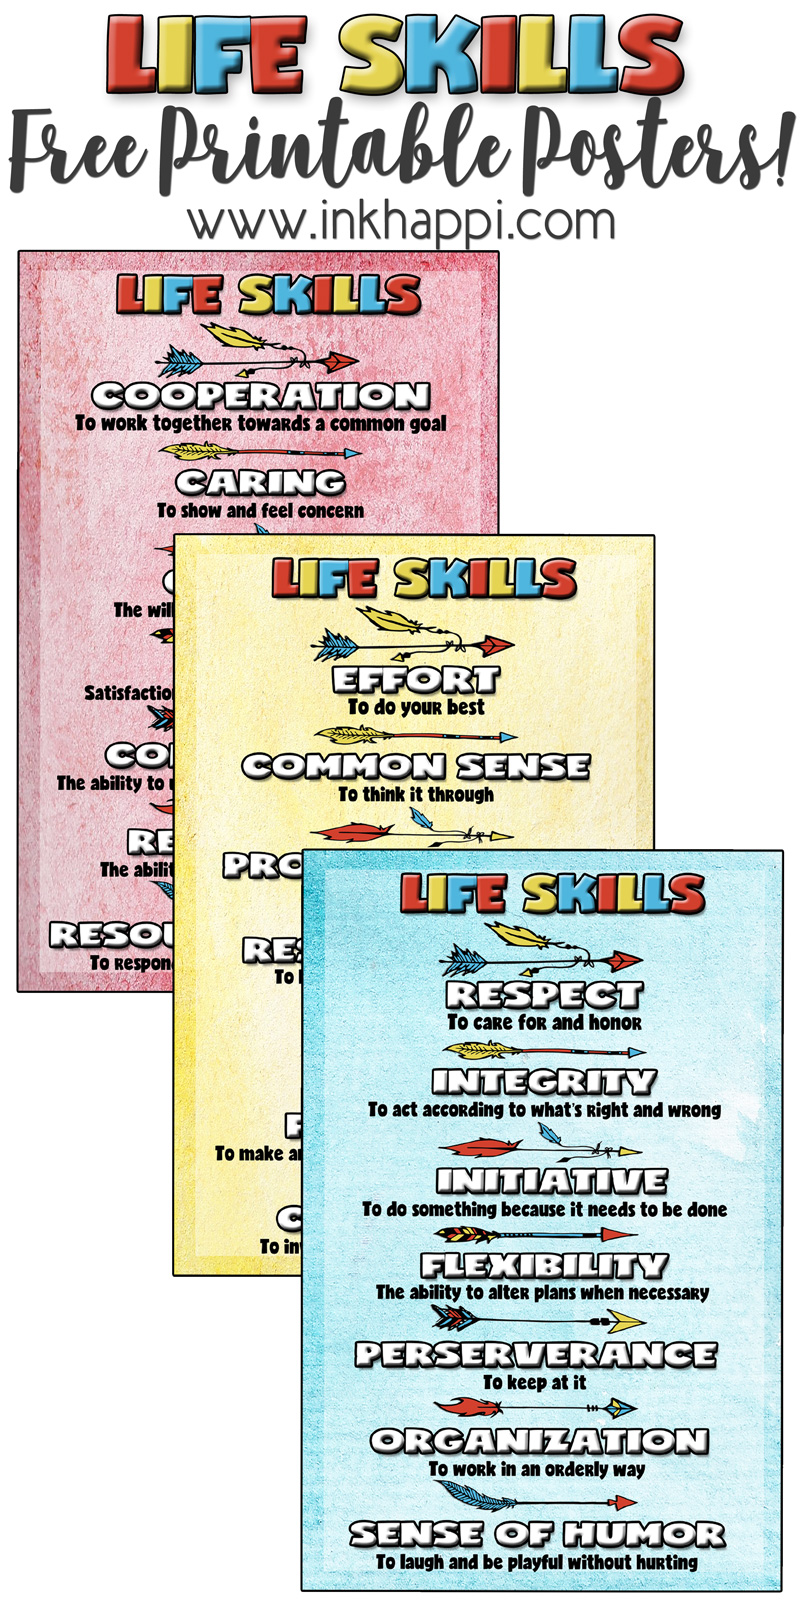 Life Skills Posters ->> Character building free printables! - inkhappi